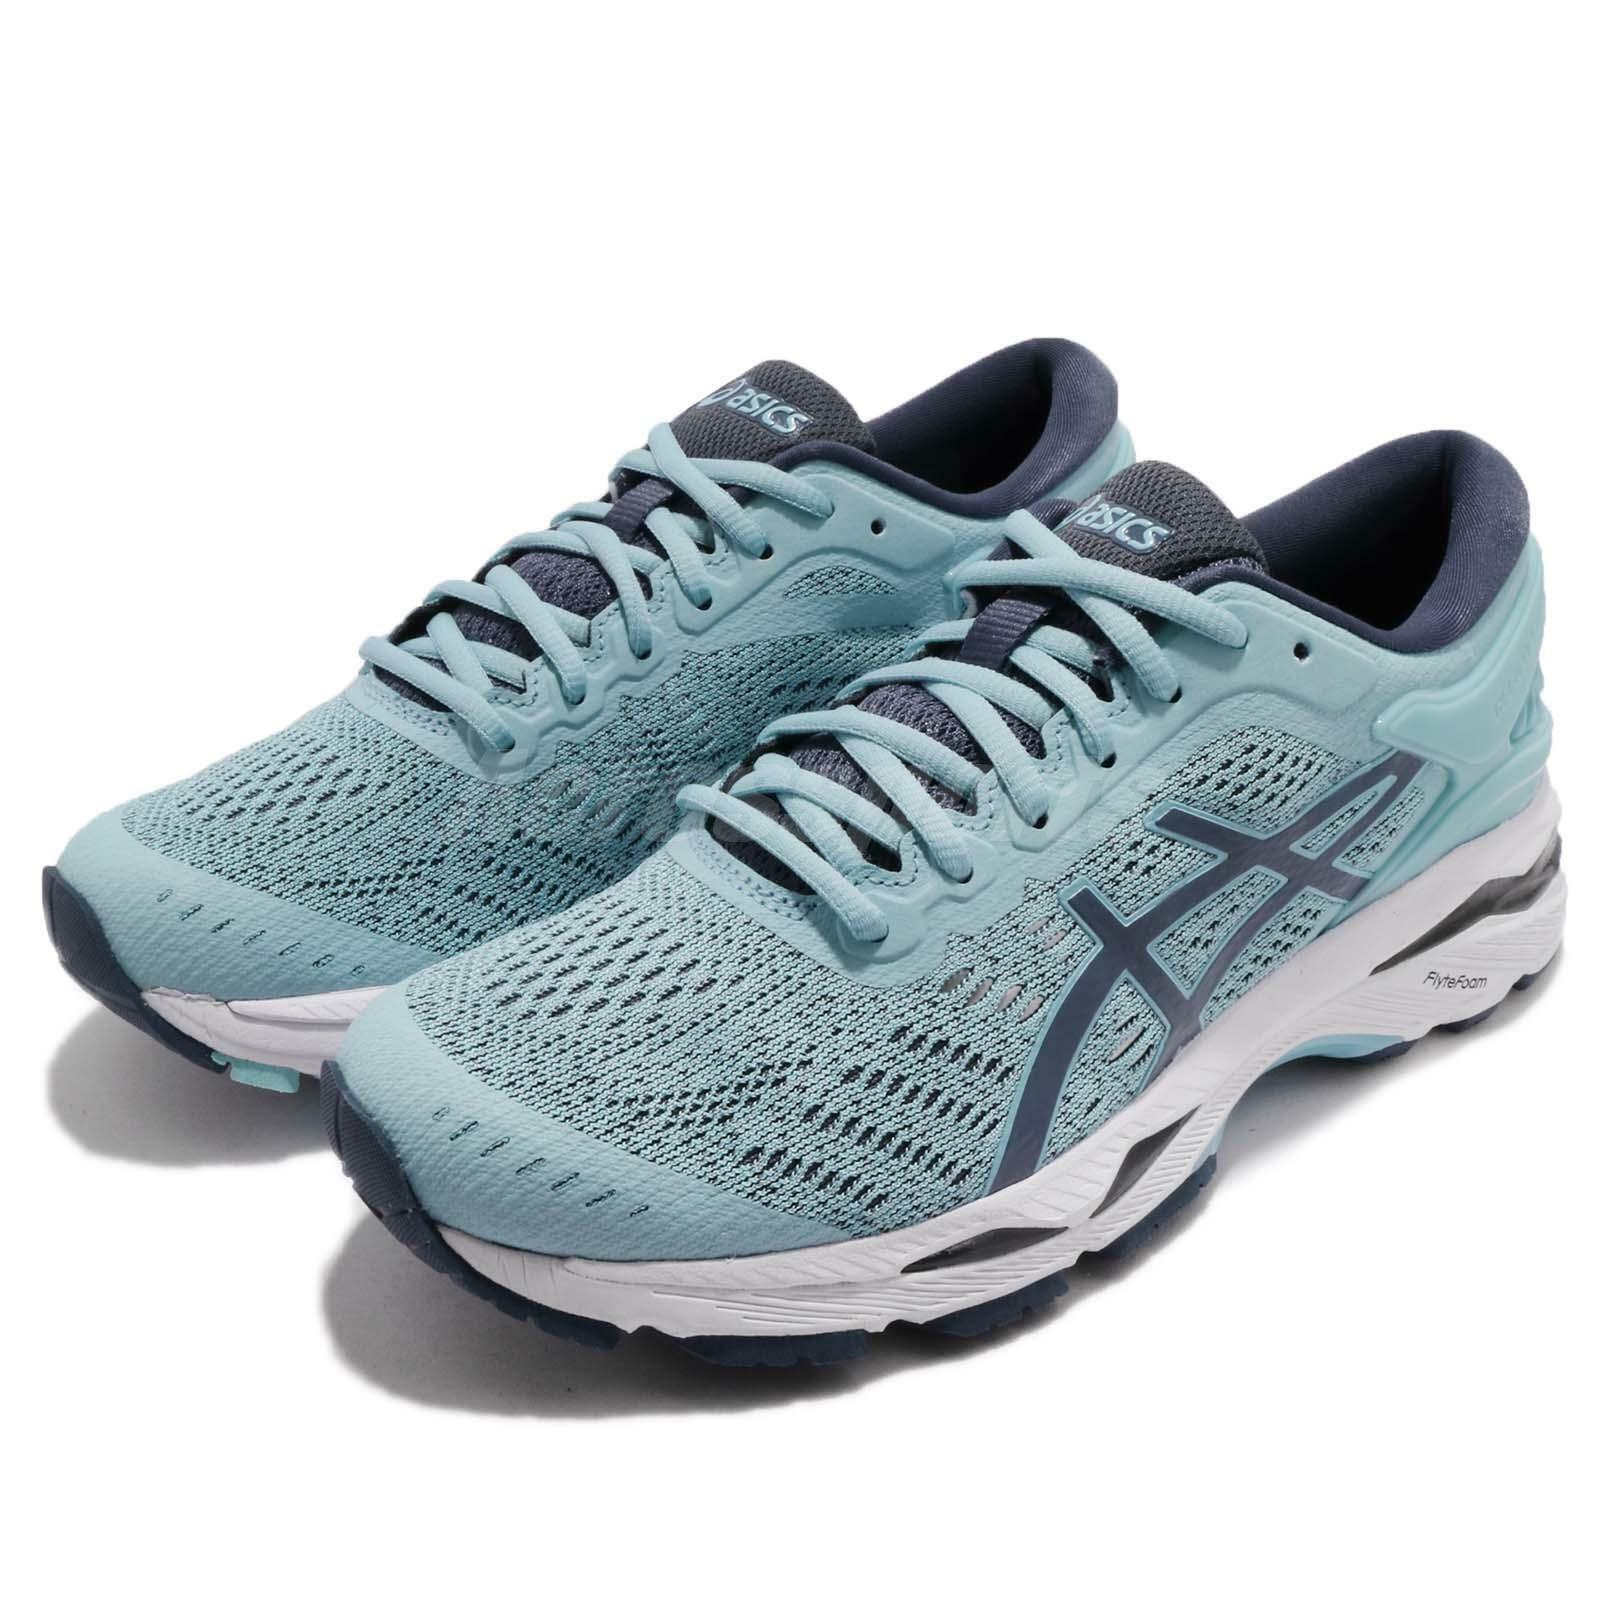 Asiacs Gel-Kayano 24 Porclean Blau Navy damen Gear Road Running schuhe T799N-1456